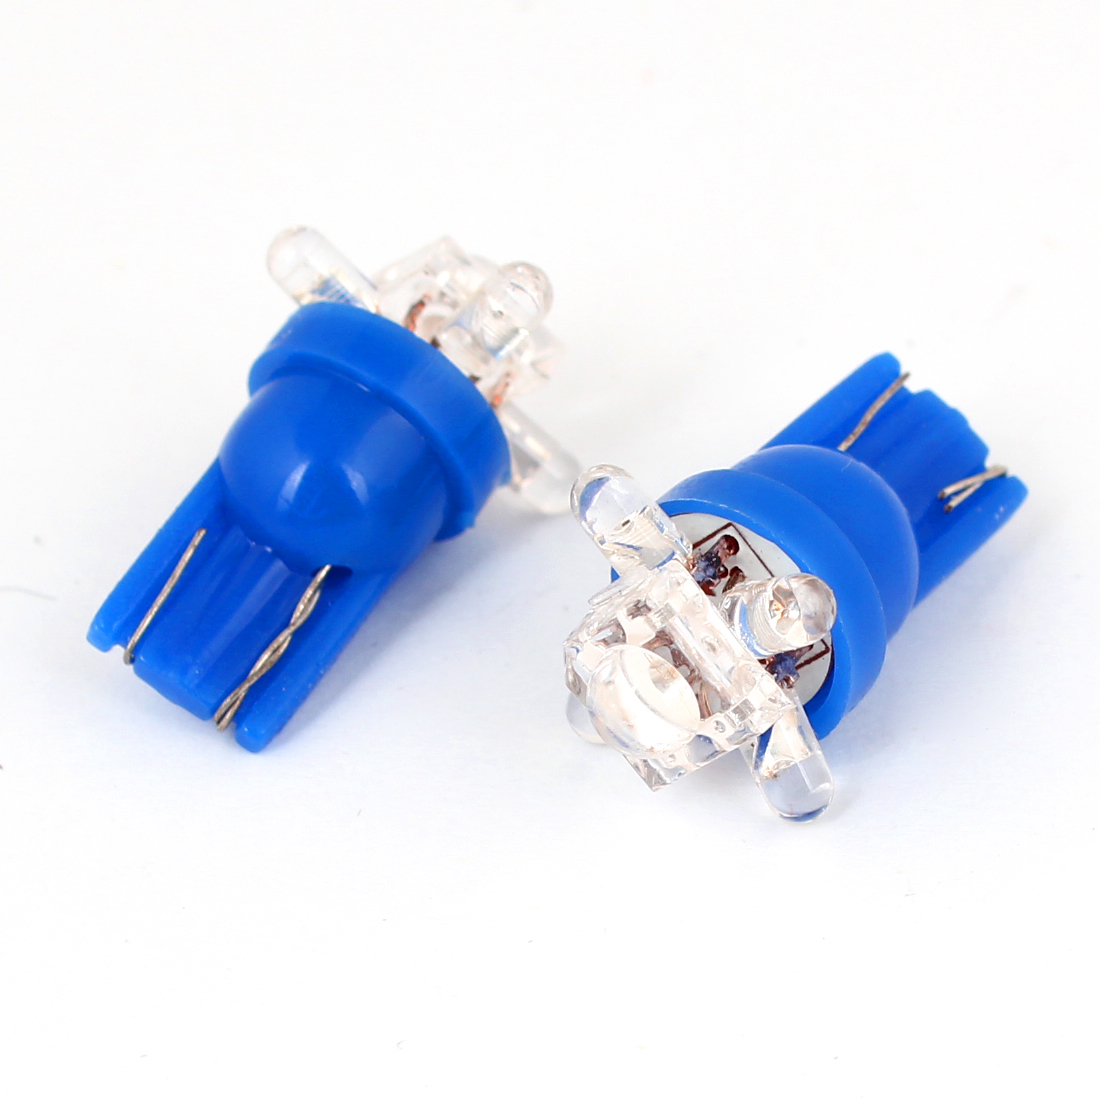 T10 Blue 5 LED Wedge Lamp Dashboard Light Bulb 2 Pcs for Car